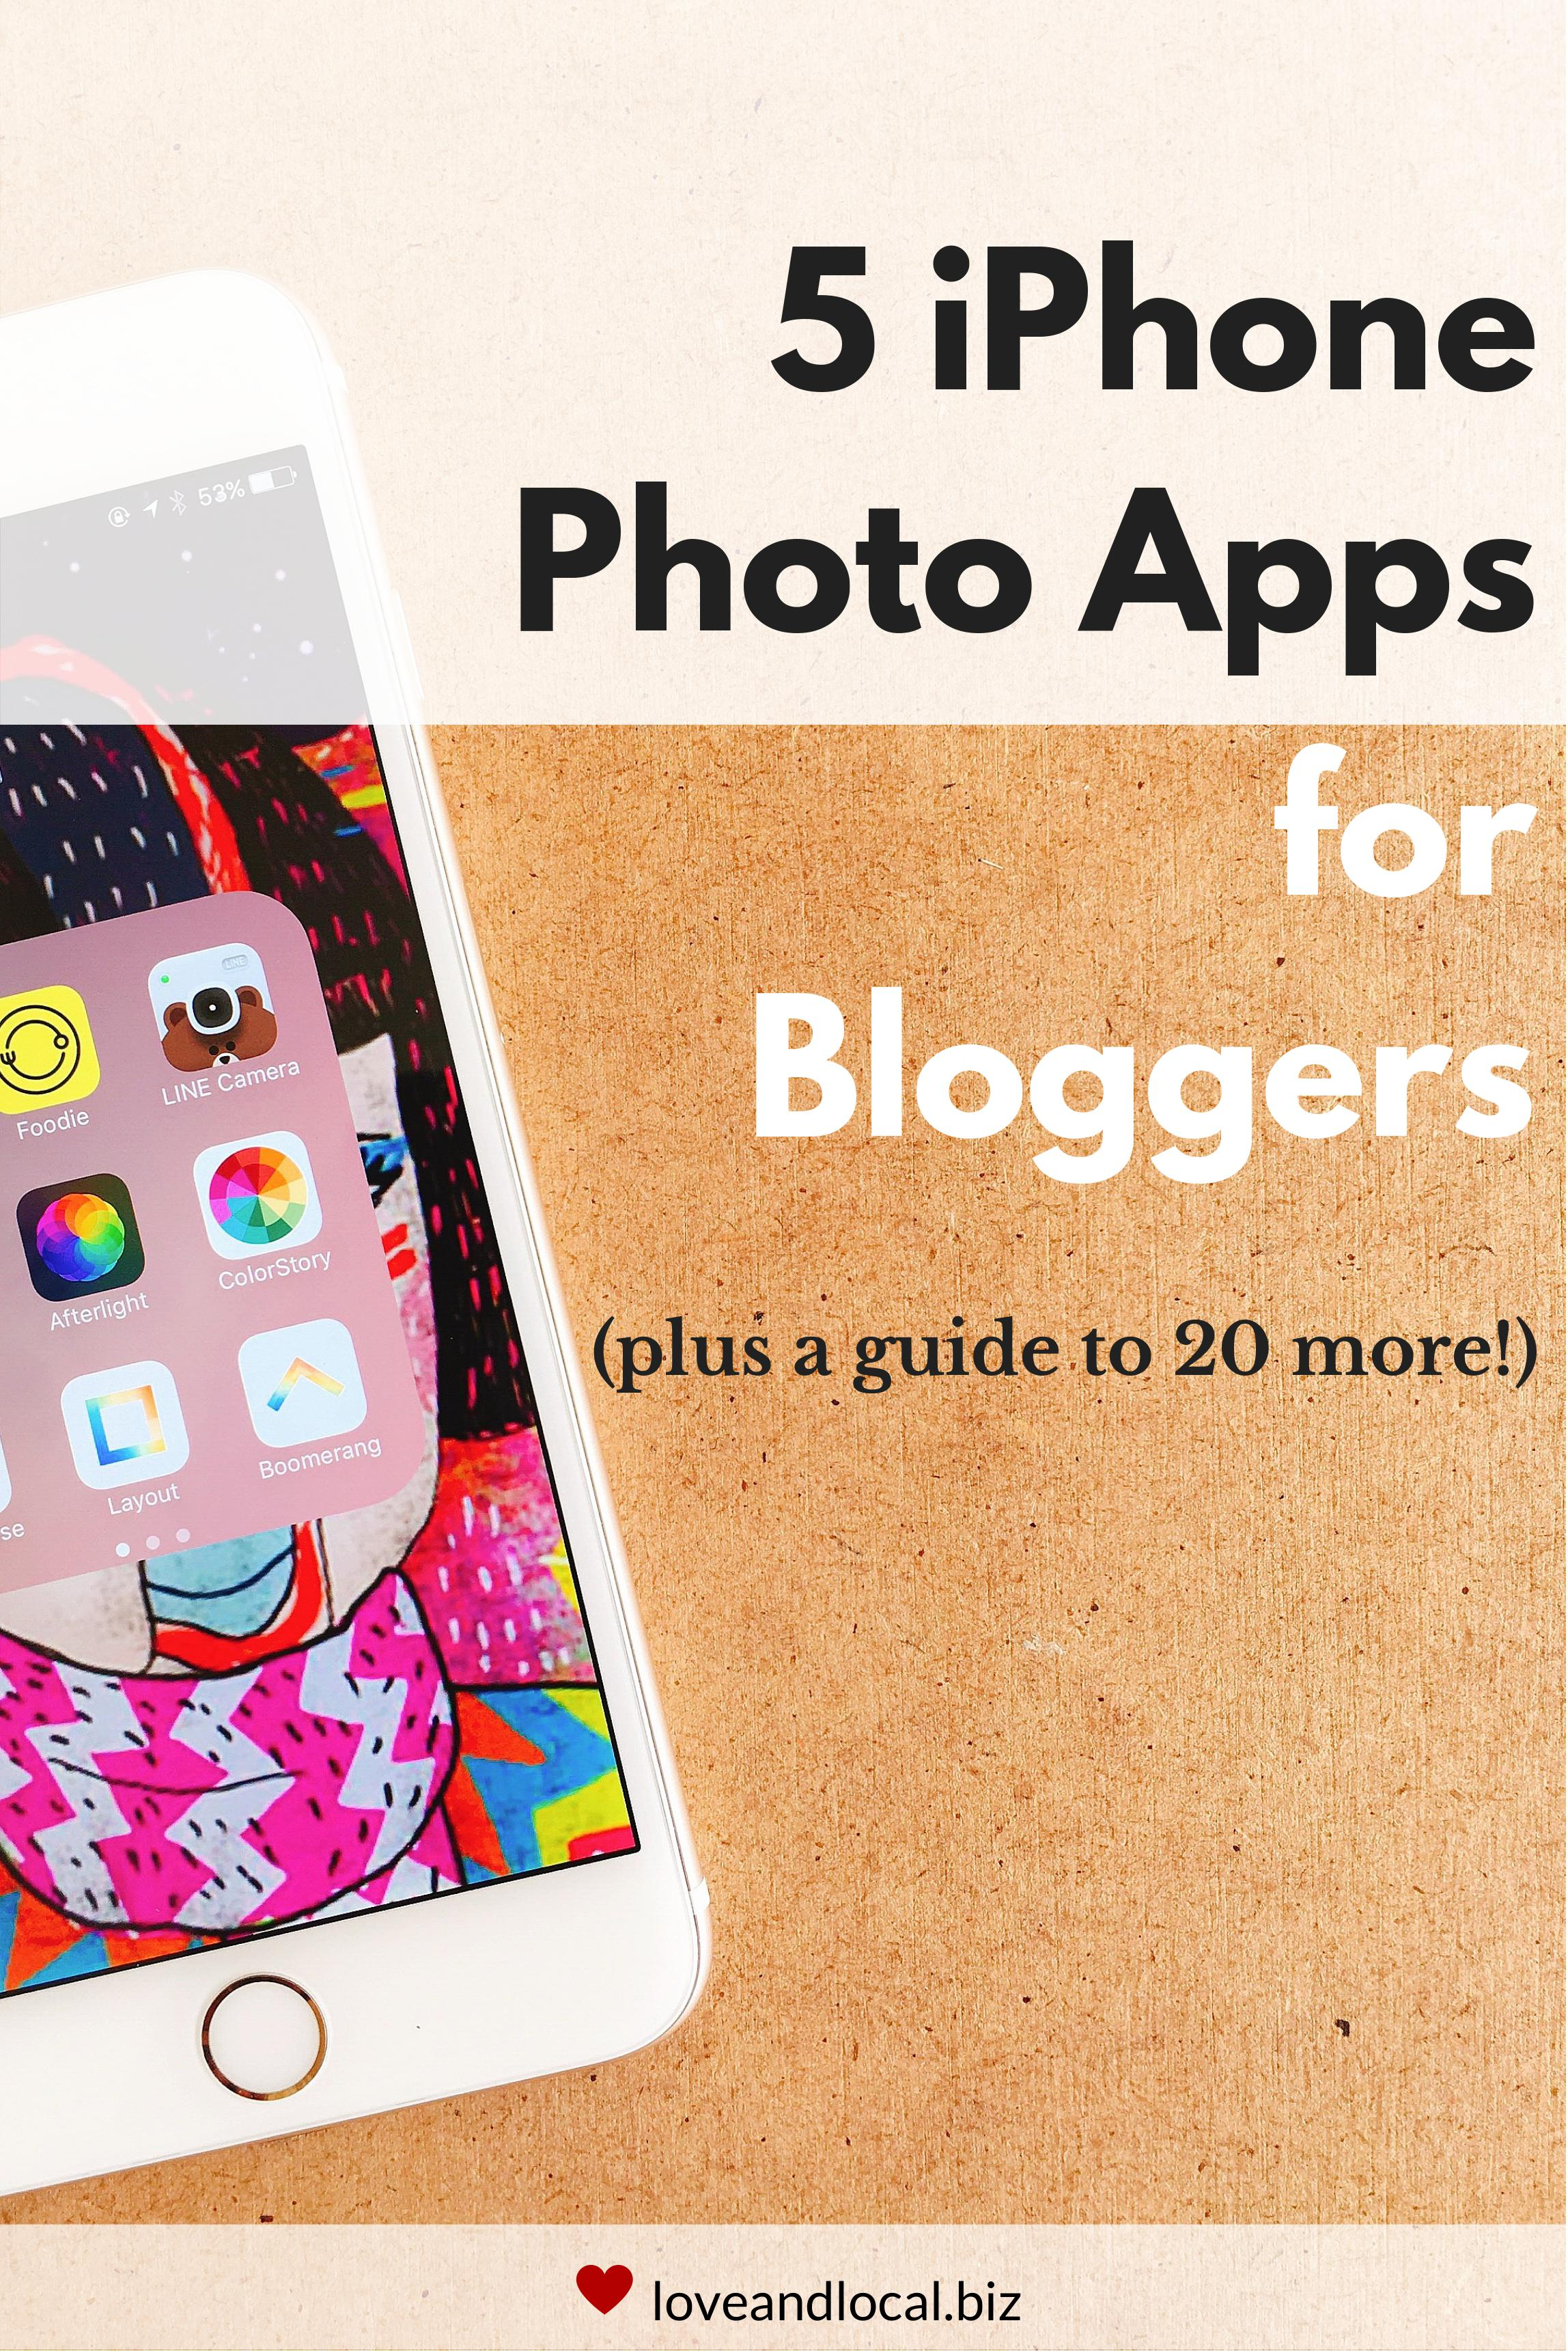 If you're using your iPhone for your blog or business photos, here's 5 apps that you should be using. Plus a free guide with 20 more apps if you're ready to take your visual content to the next level! | #blogging #blogphotography #branding |  from loveandlocal.biz